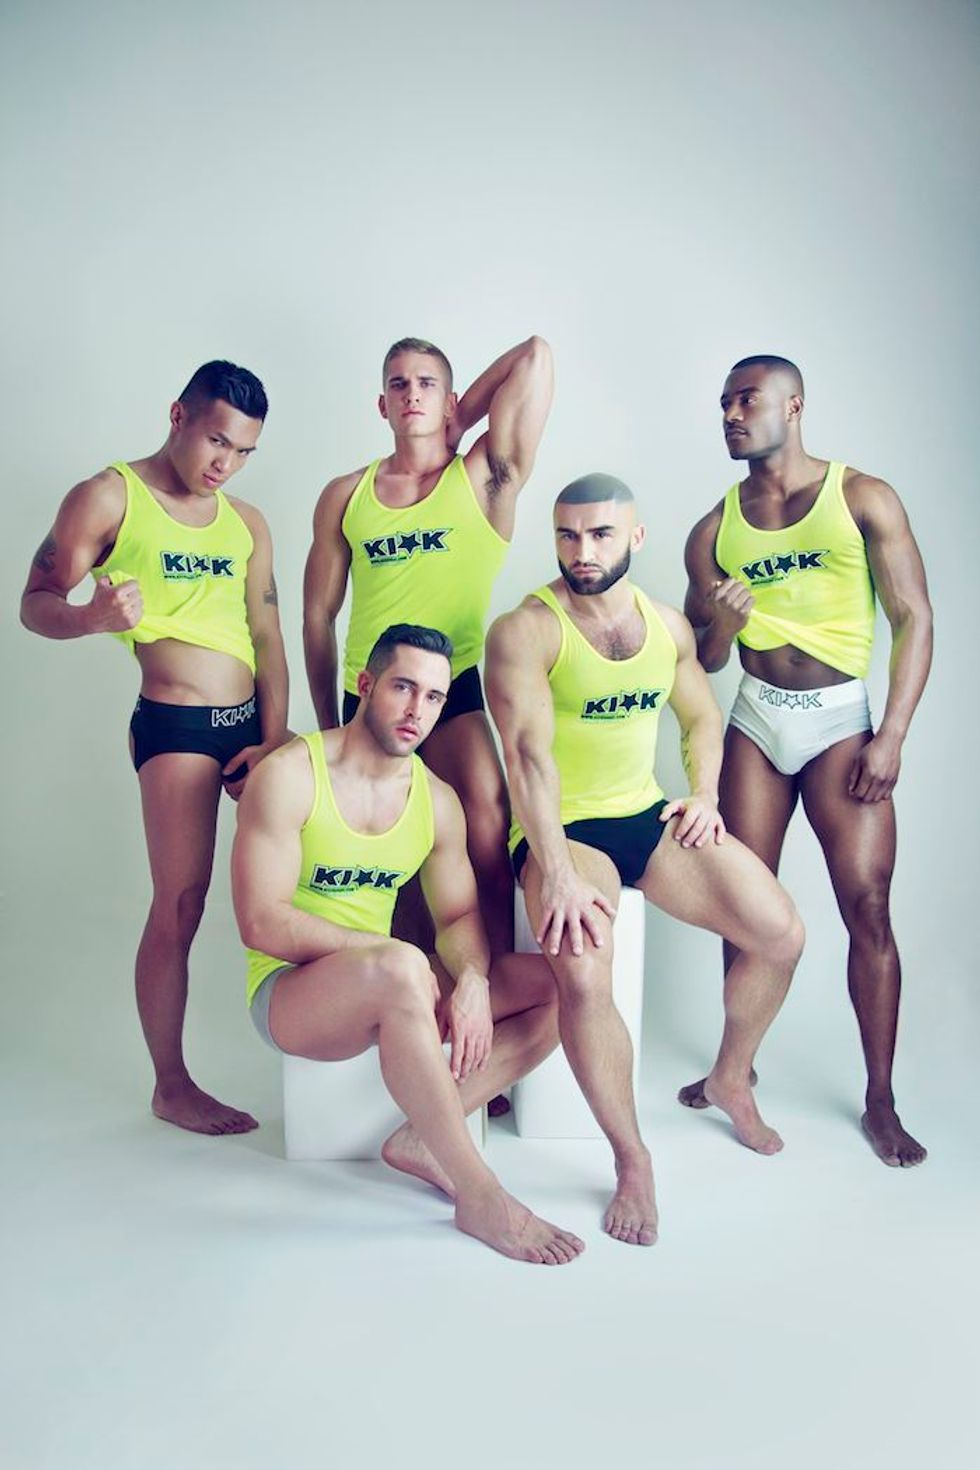 Former Porn Legend Francois Sagat On His New Clothing Line, Kick Sagat